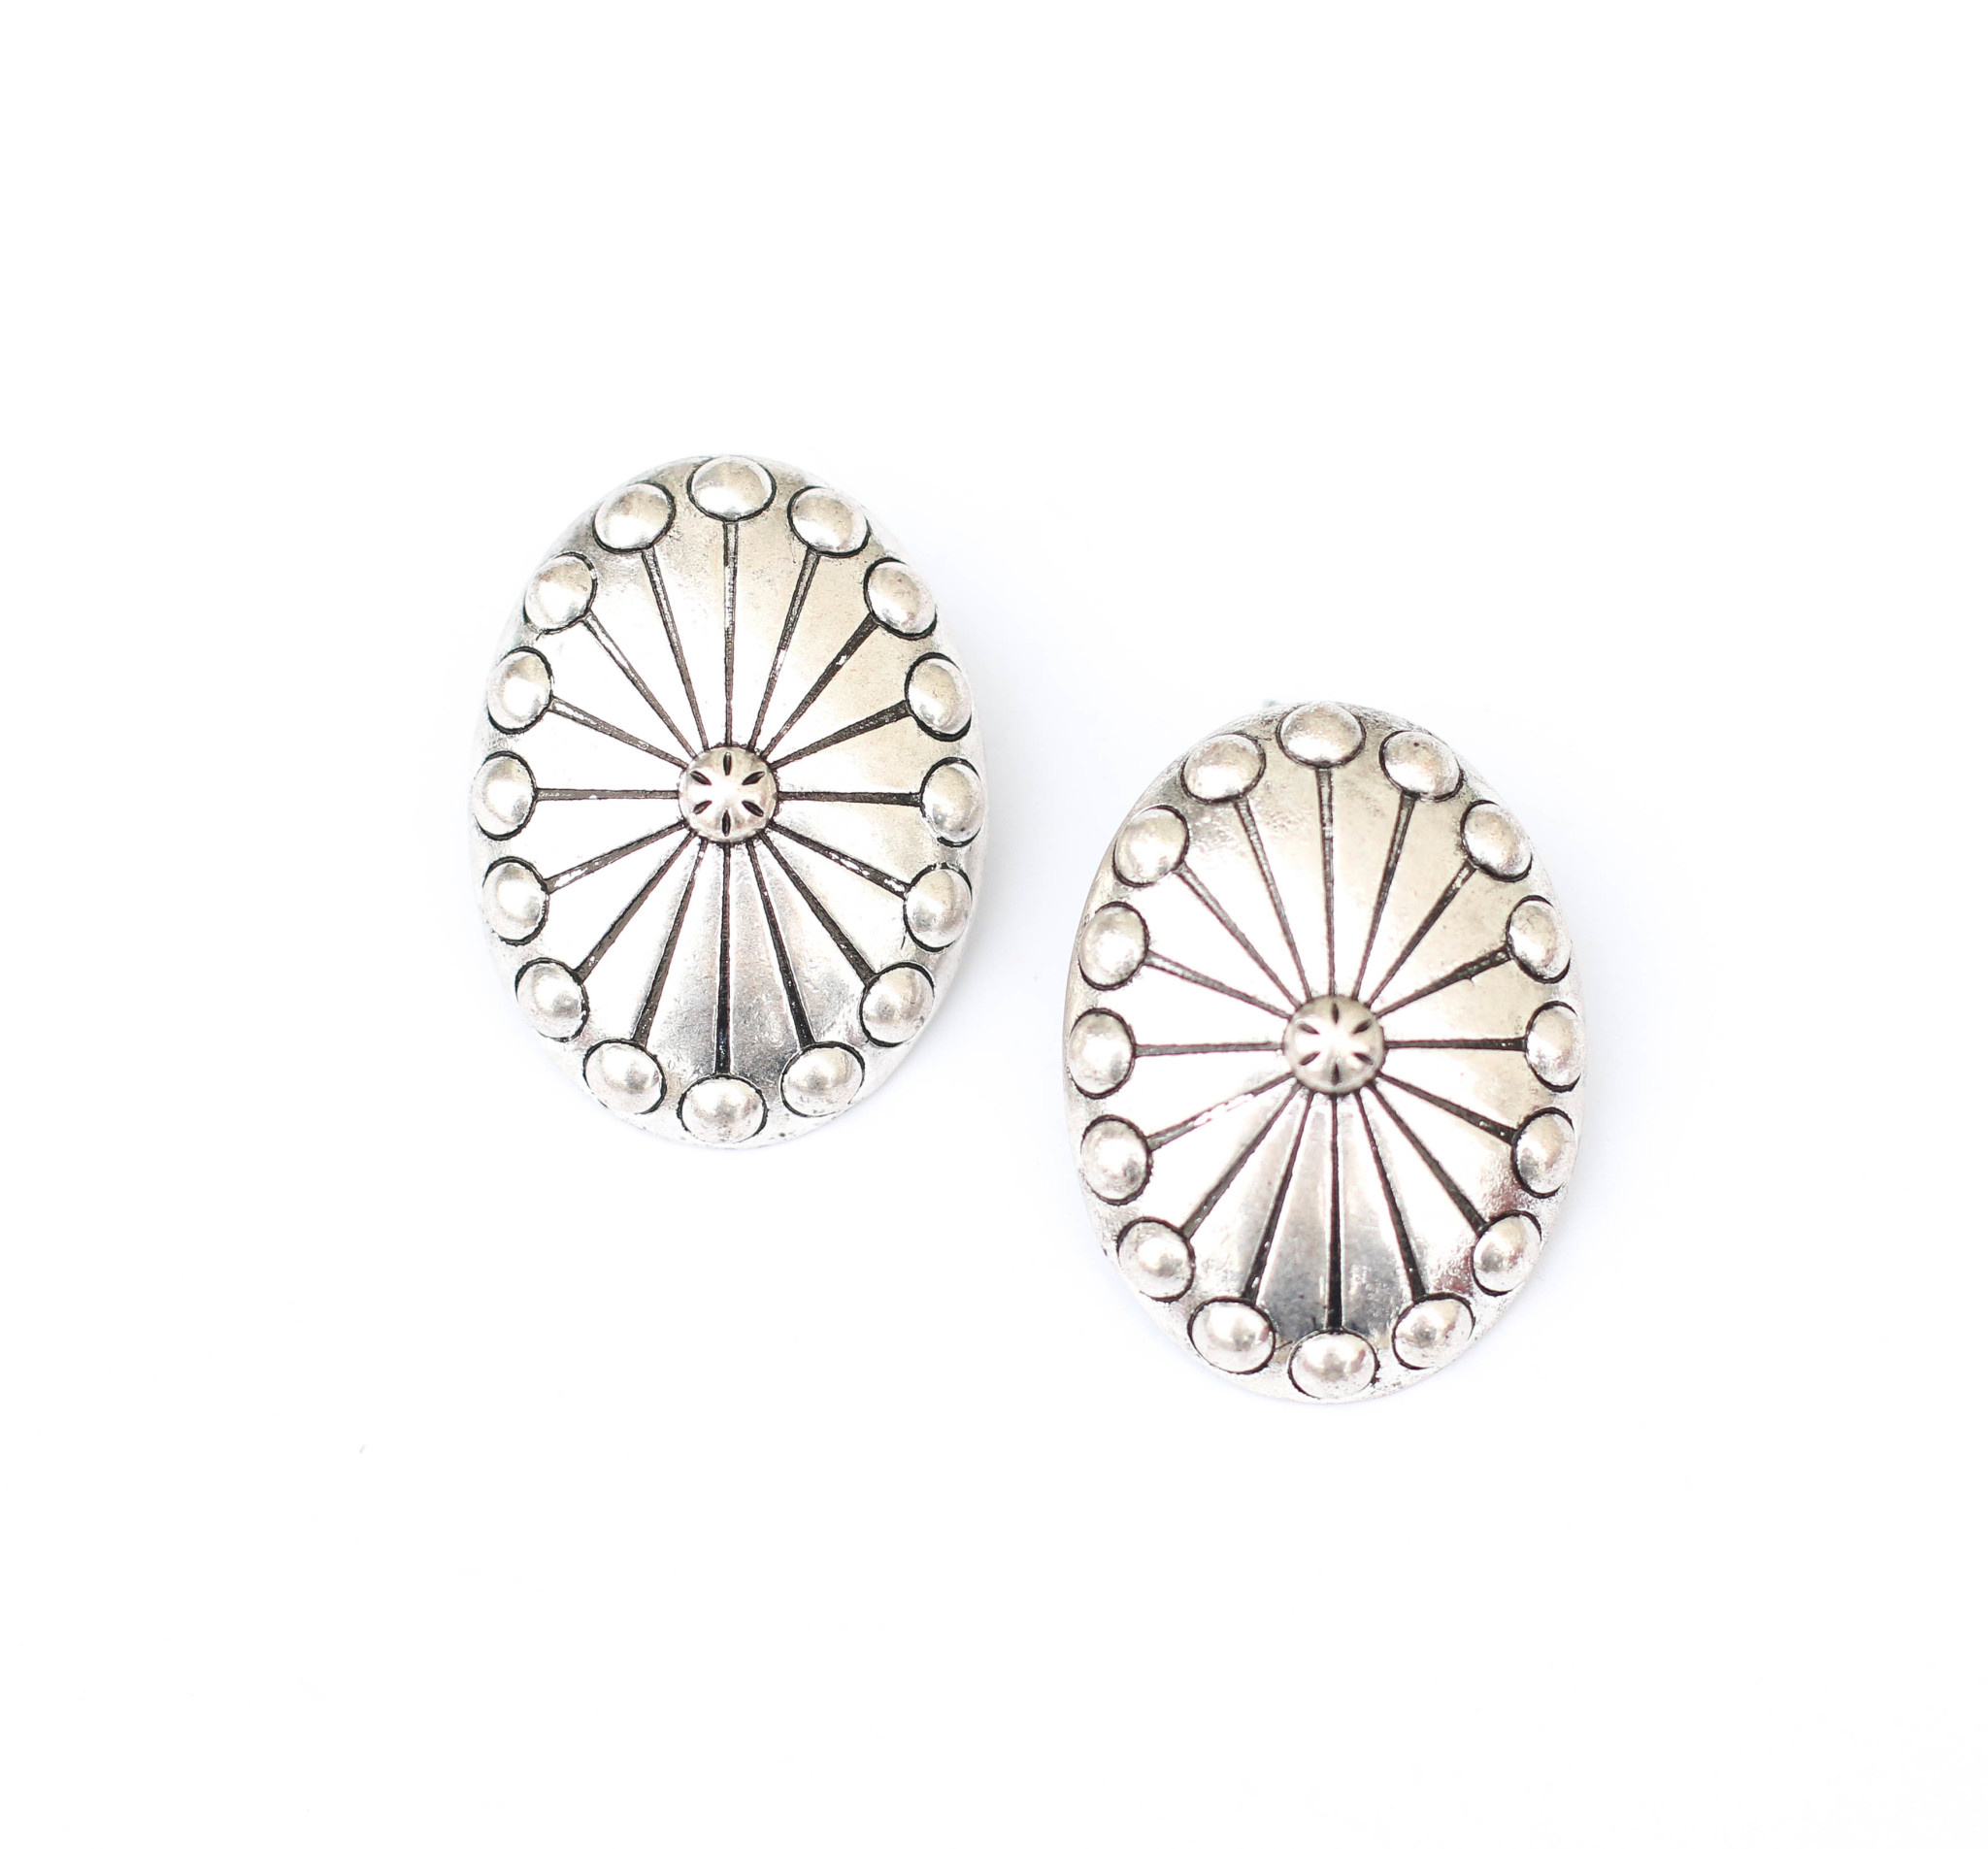 Punchy's Burnished Silver Studded Concho Post Earring